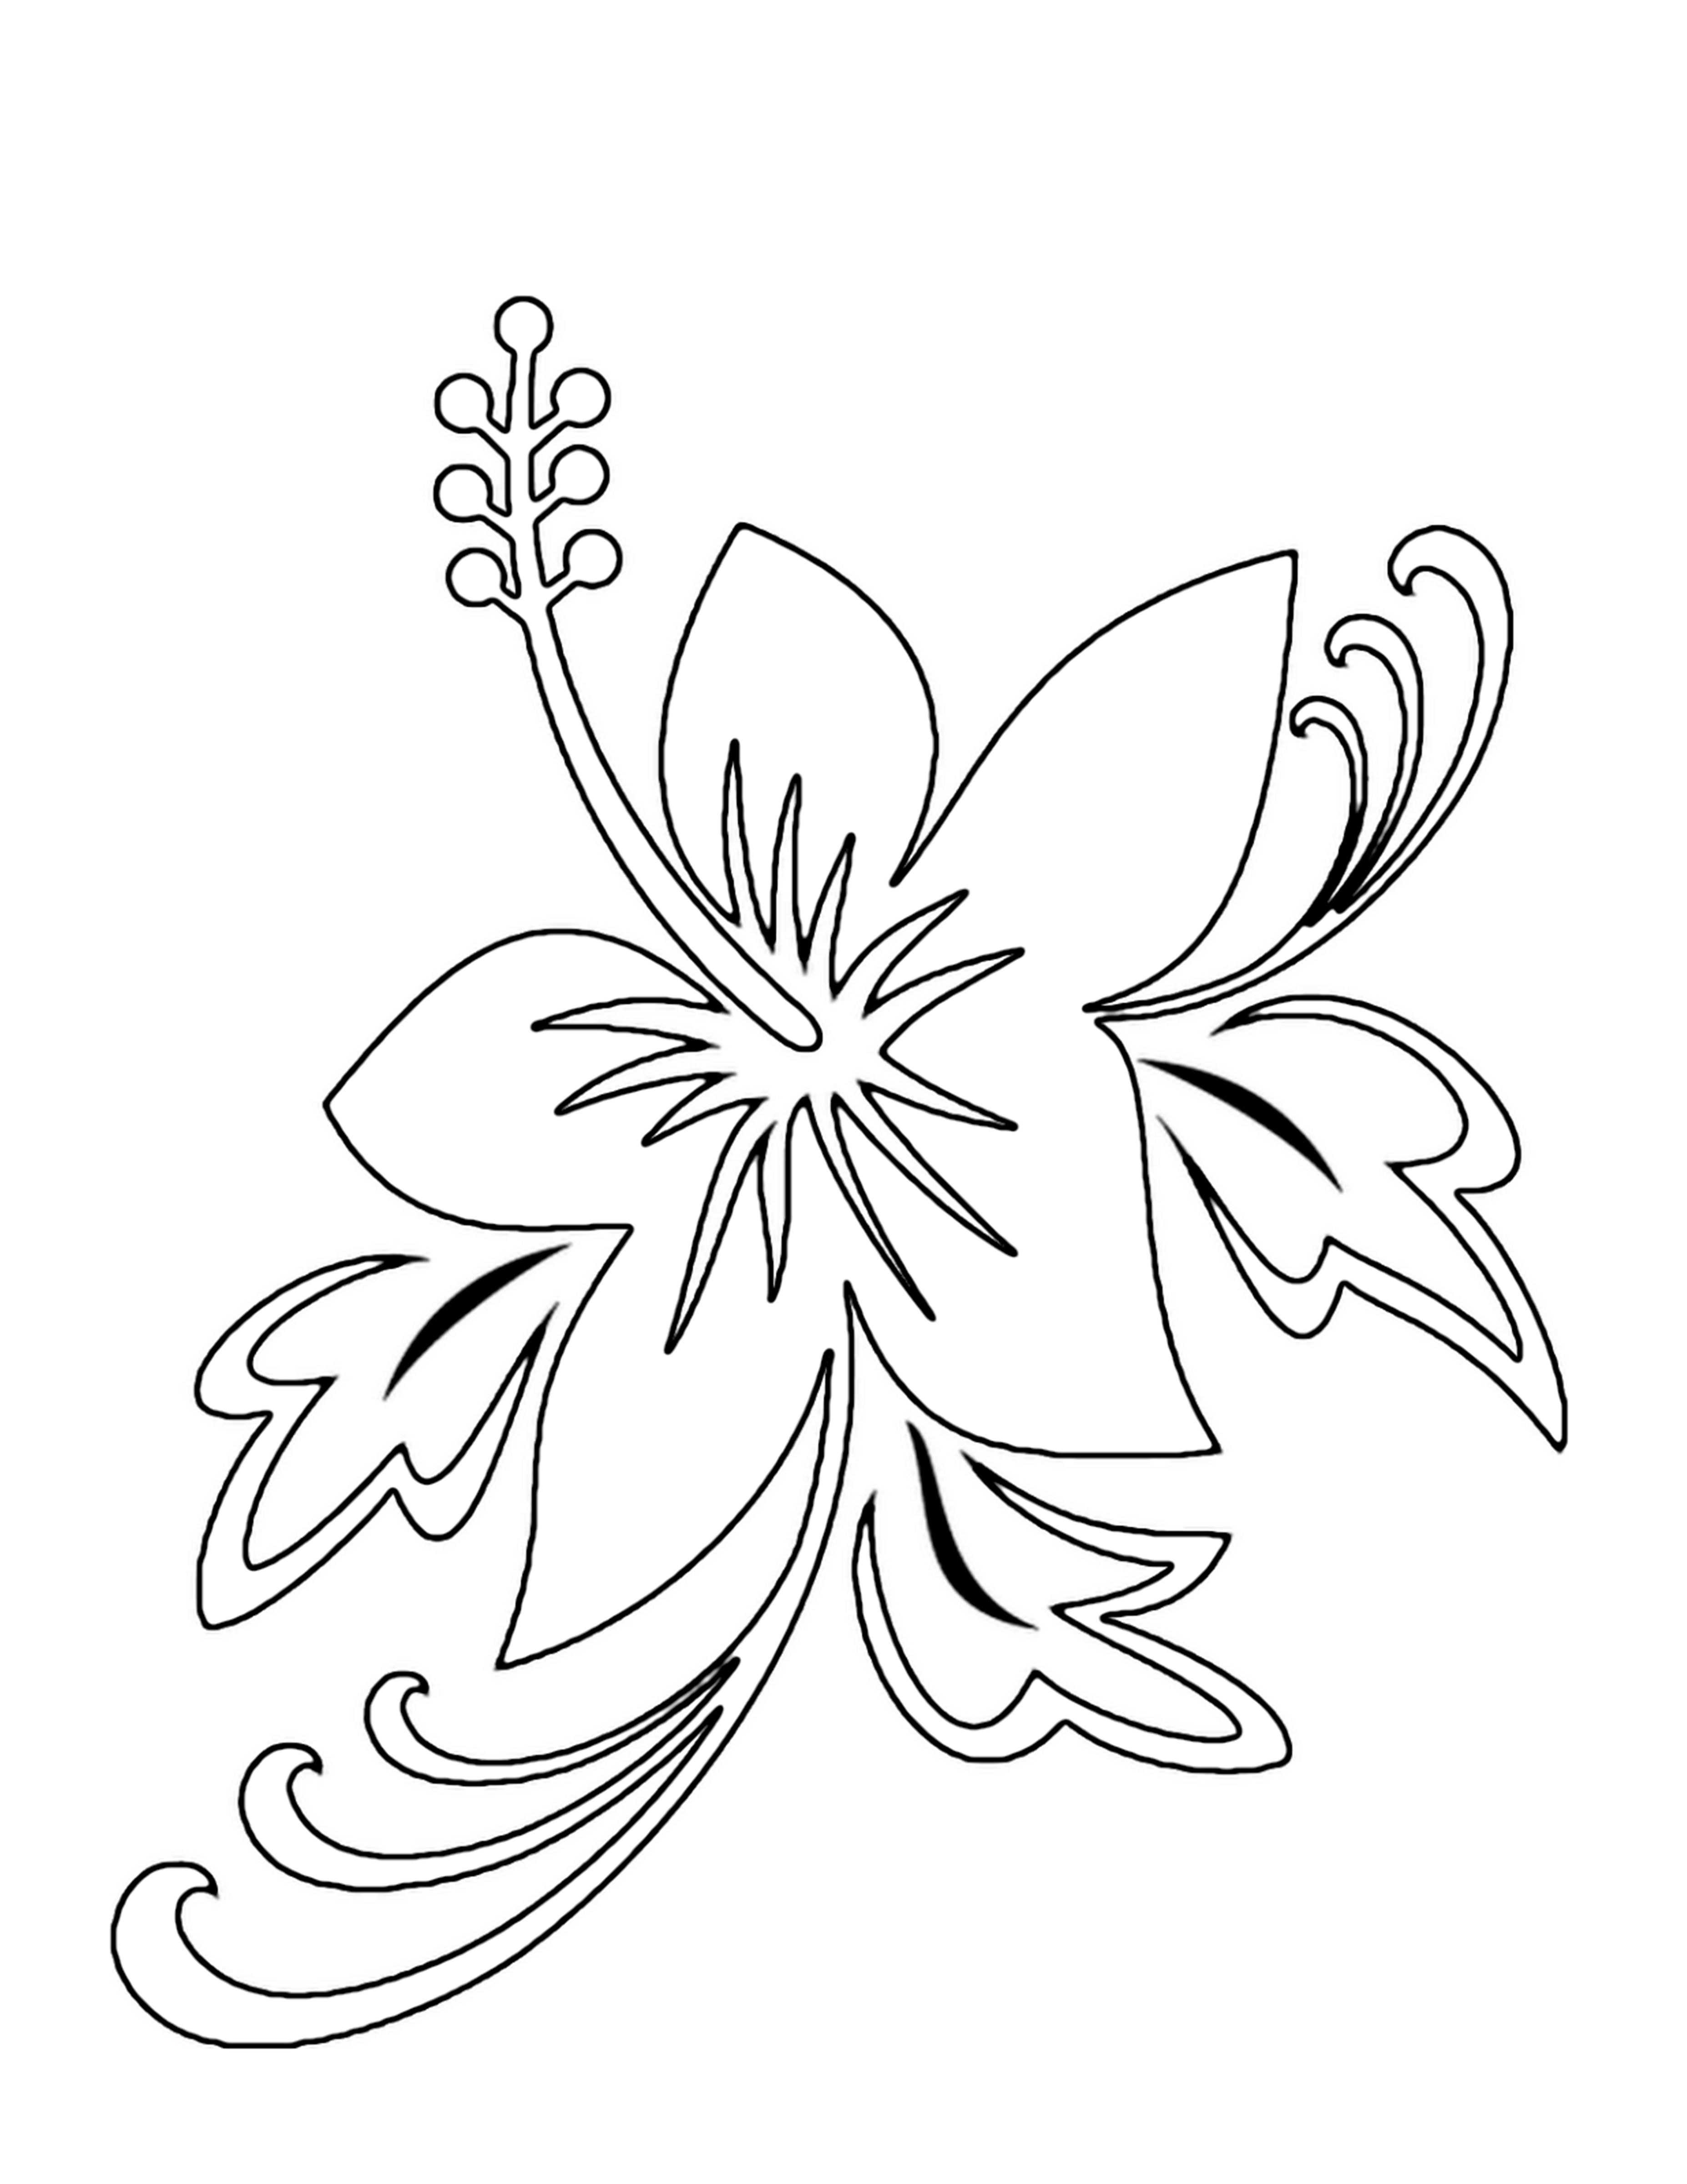 pictures of flowers for coloring free printable flower coloring pages for kids best of coloring for pictures flowers